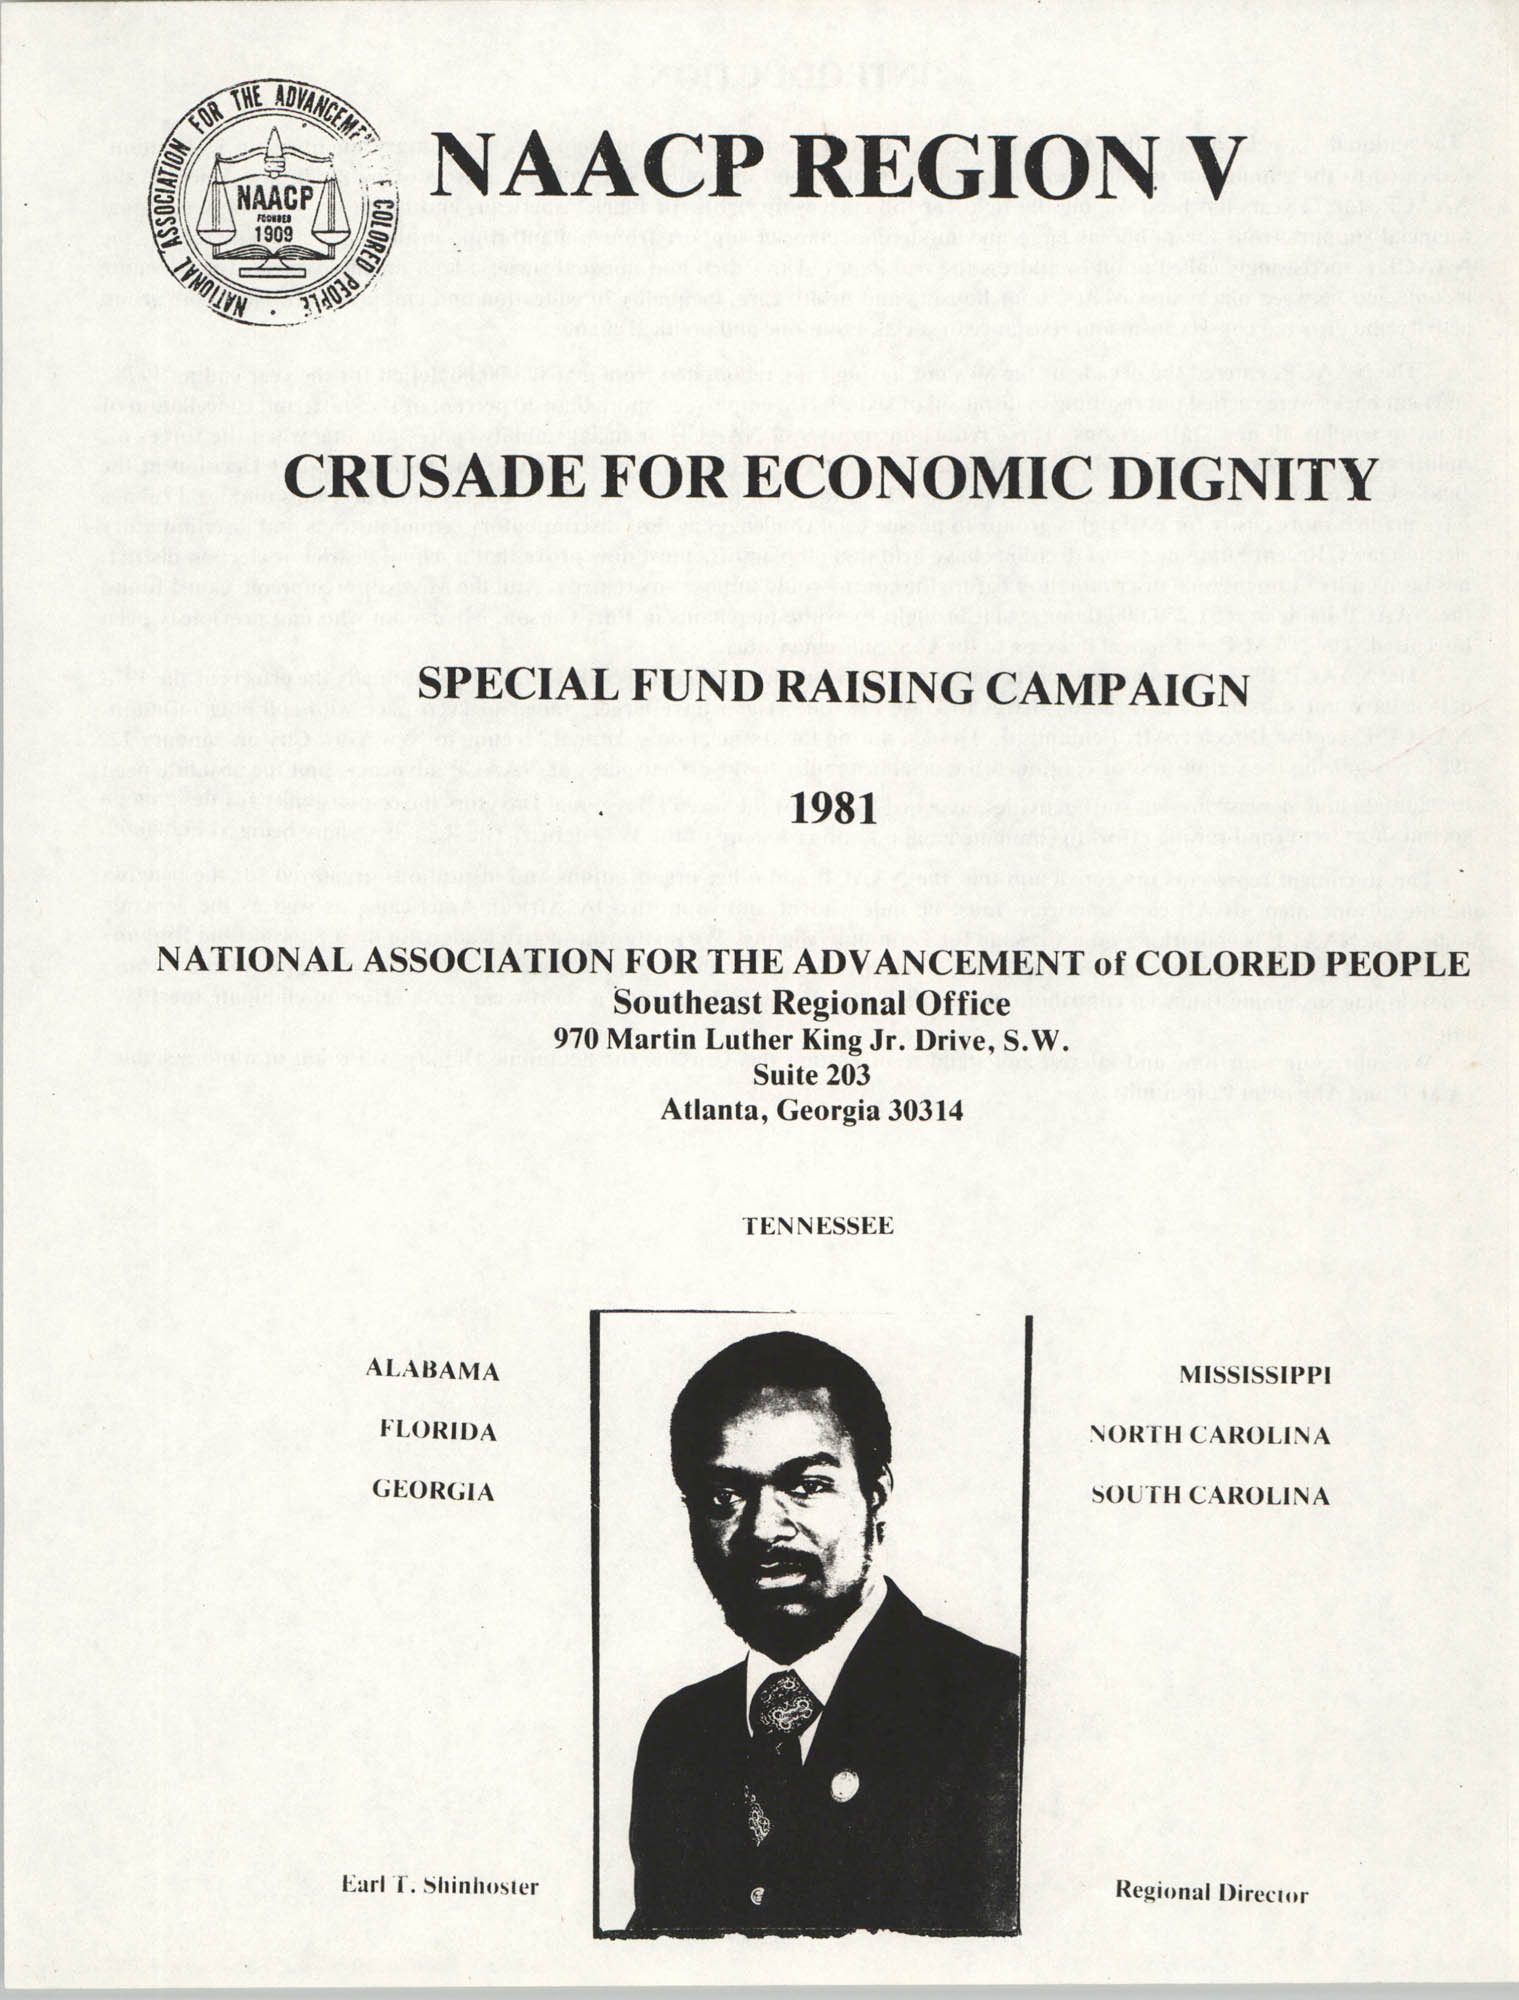 NAACP Region V, Crusade for Economic Dignity, Special Fund Raising Campaign, 1981, Cover